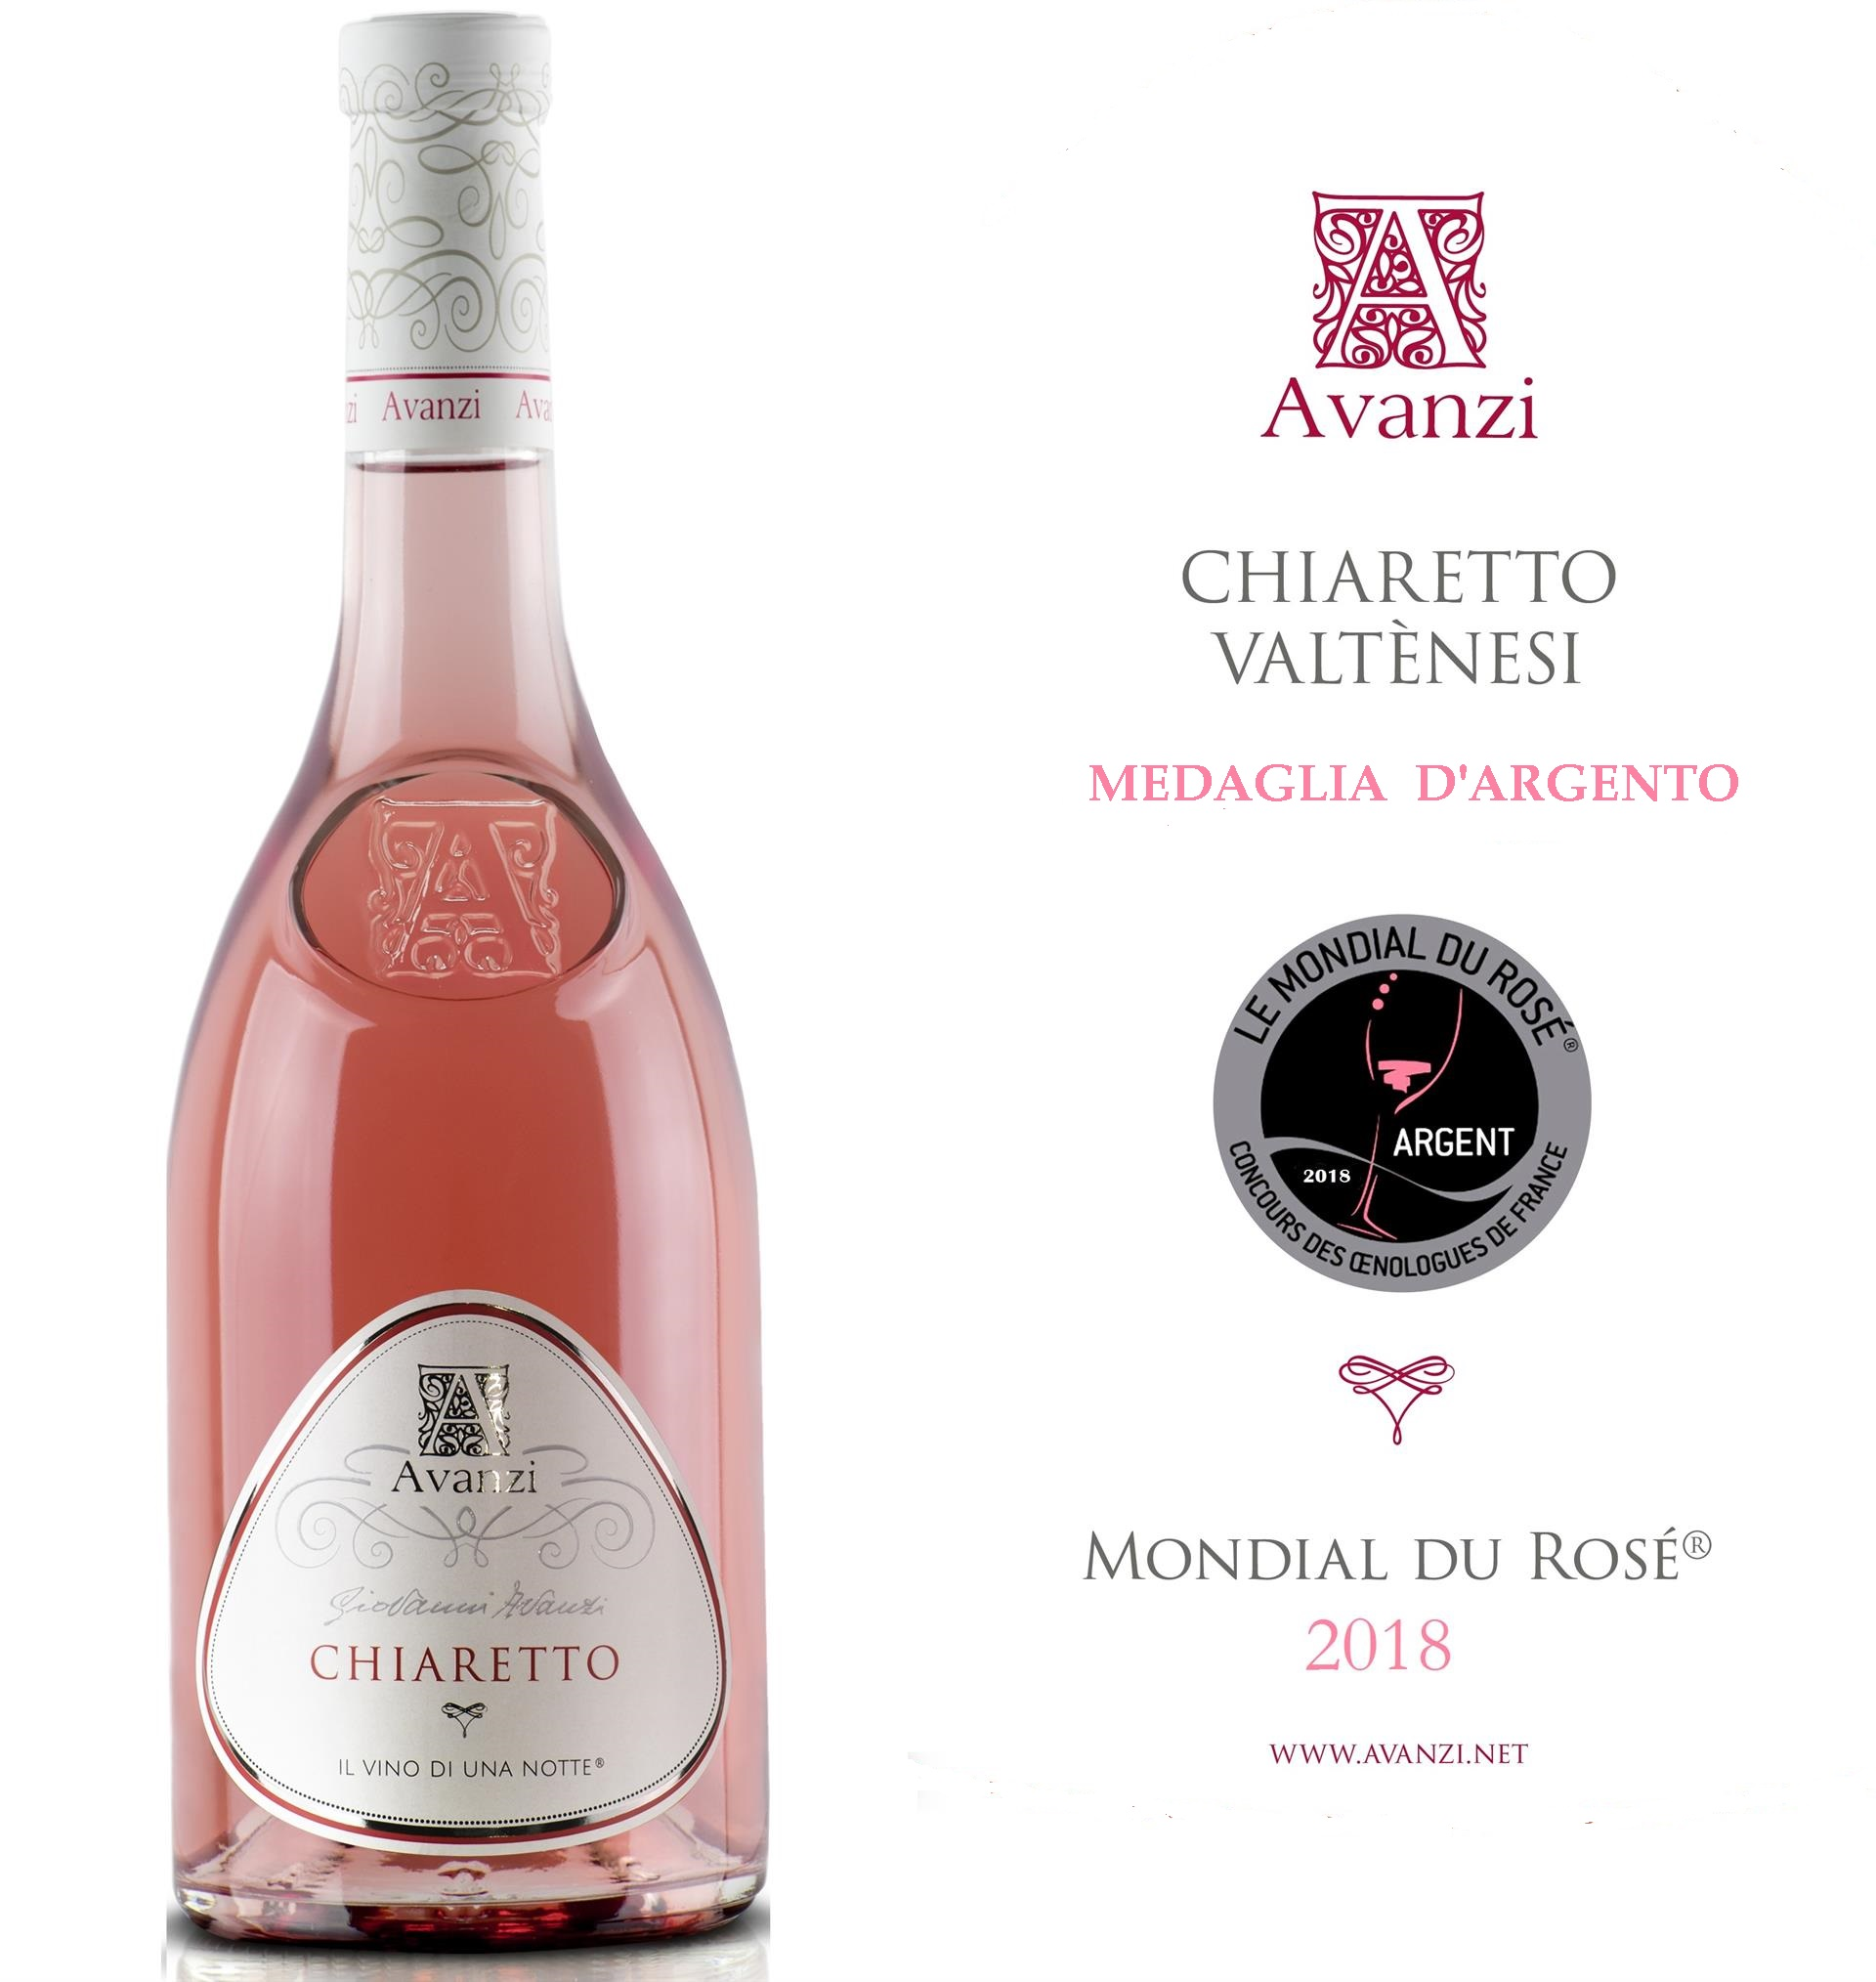 Chiaretto Avanzi awarded at Le Mondial du Rosé 2018